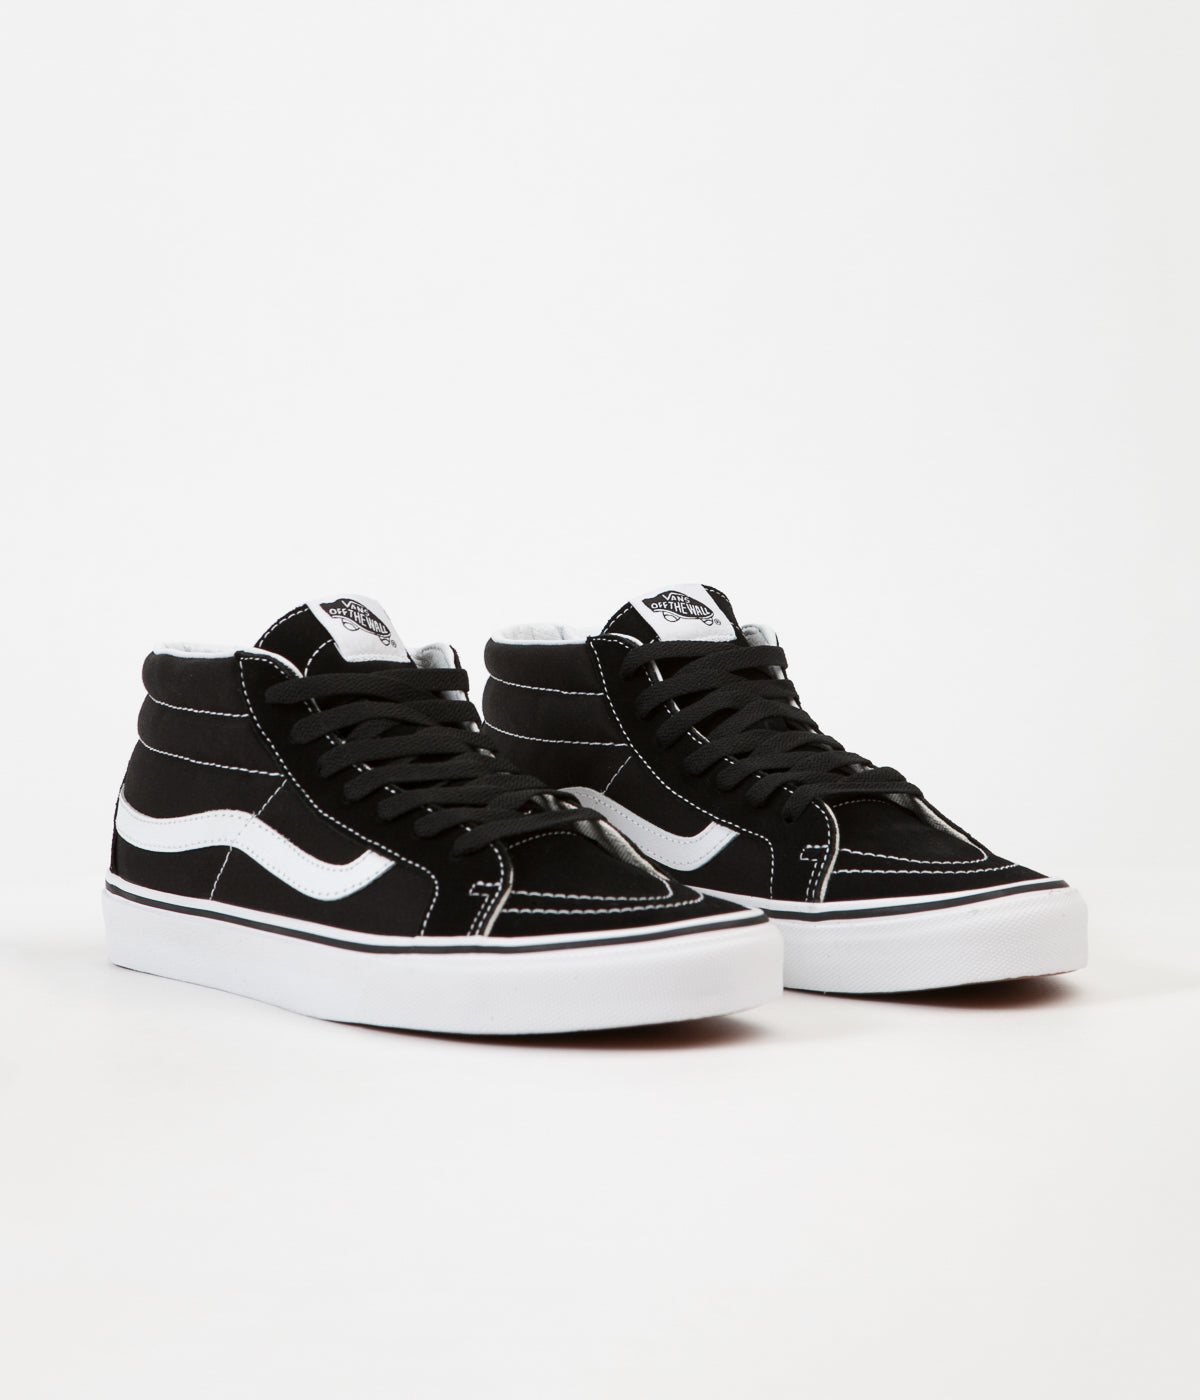 Vans Sk8-Mid Reissue Shoes - Black / True White